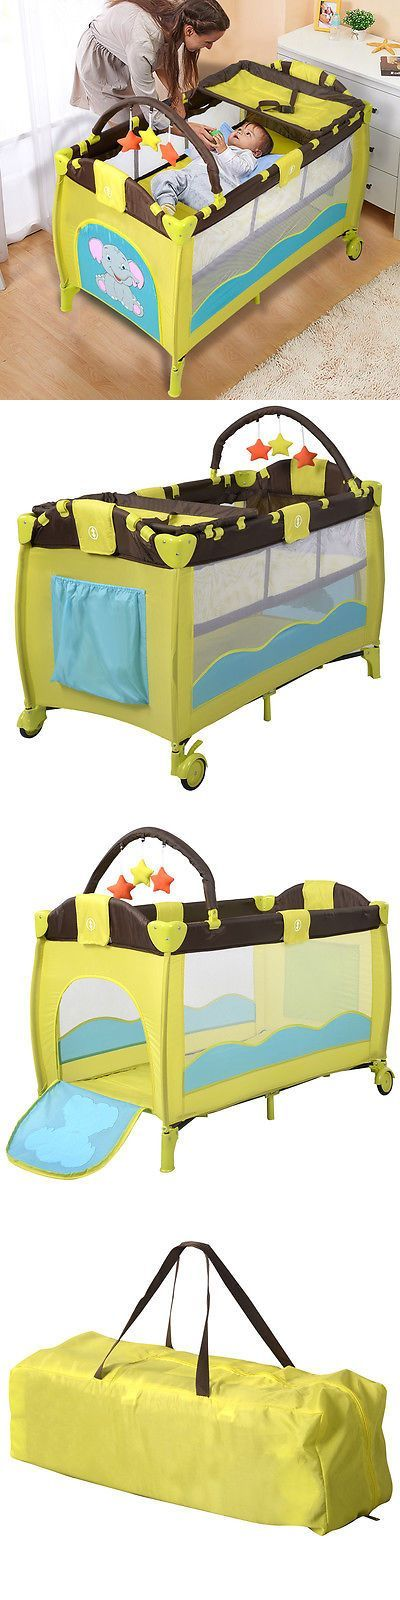 baby kid stuff: New Green Baby Crib Playpen Playard Pack Travel Infant Bassinet Bed Foldable BUY IT NOW ONLY: $52.99